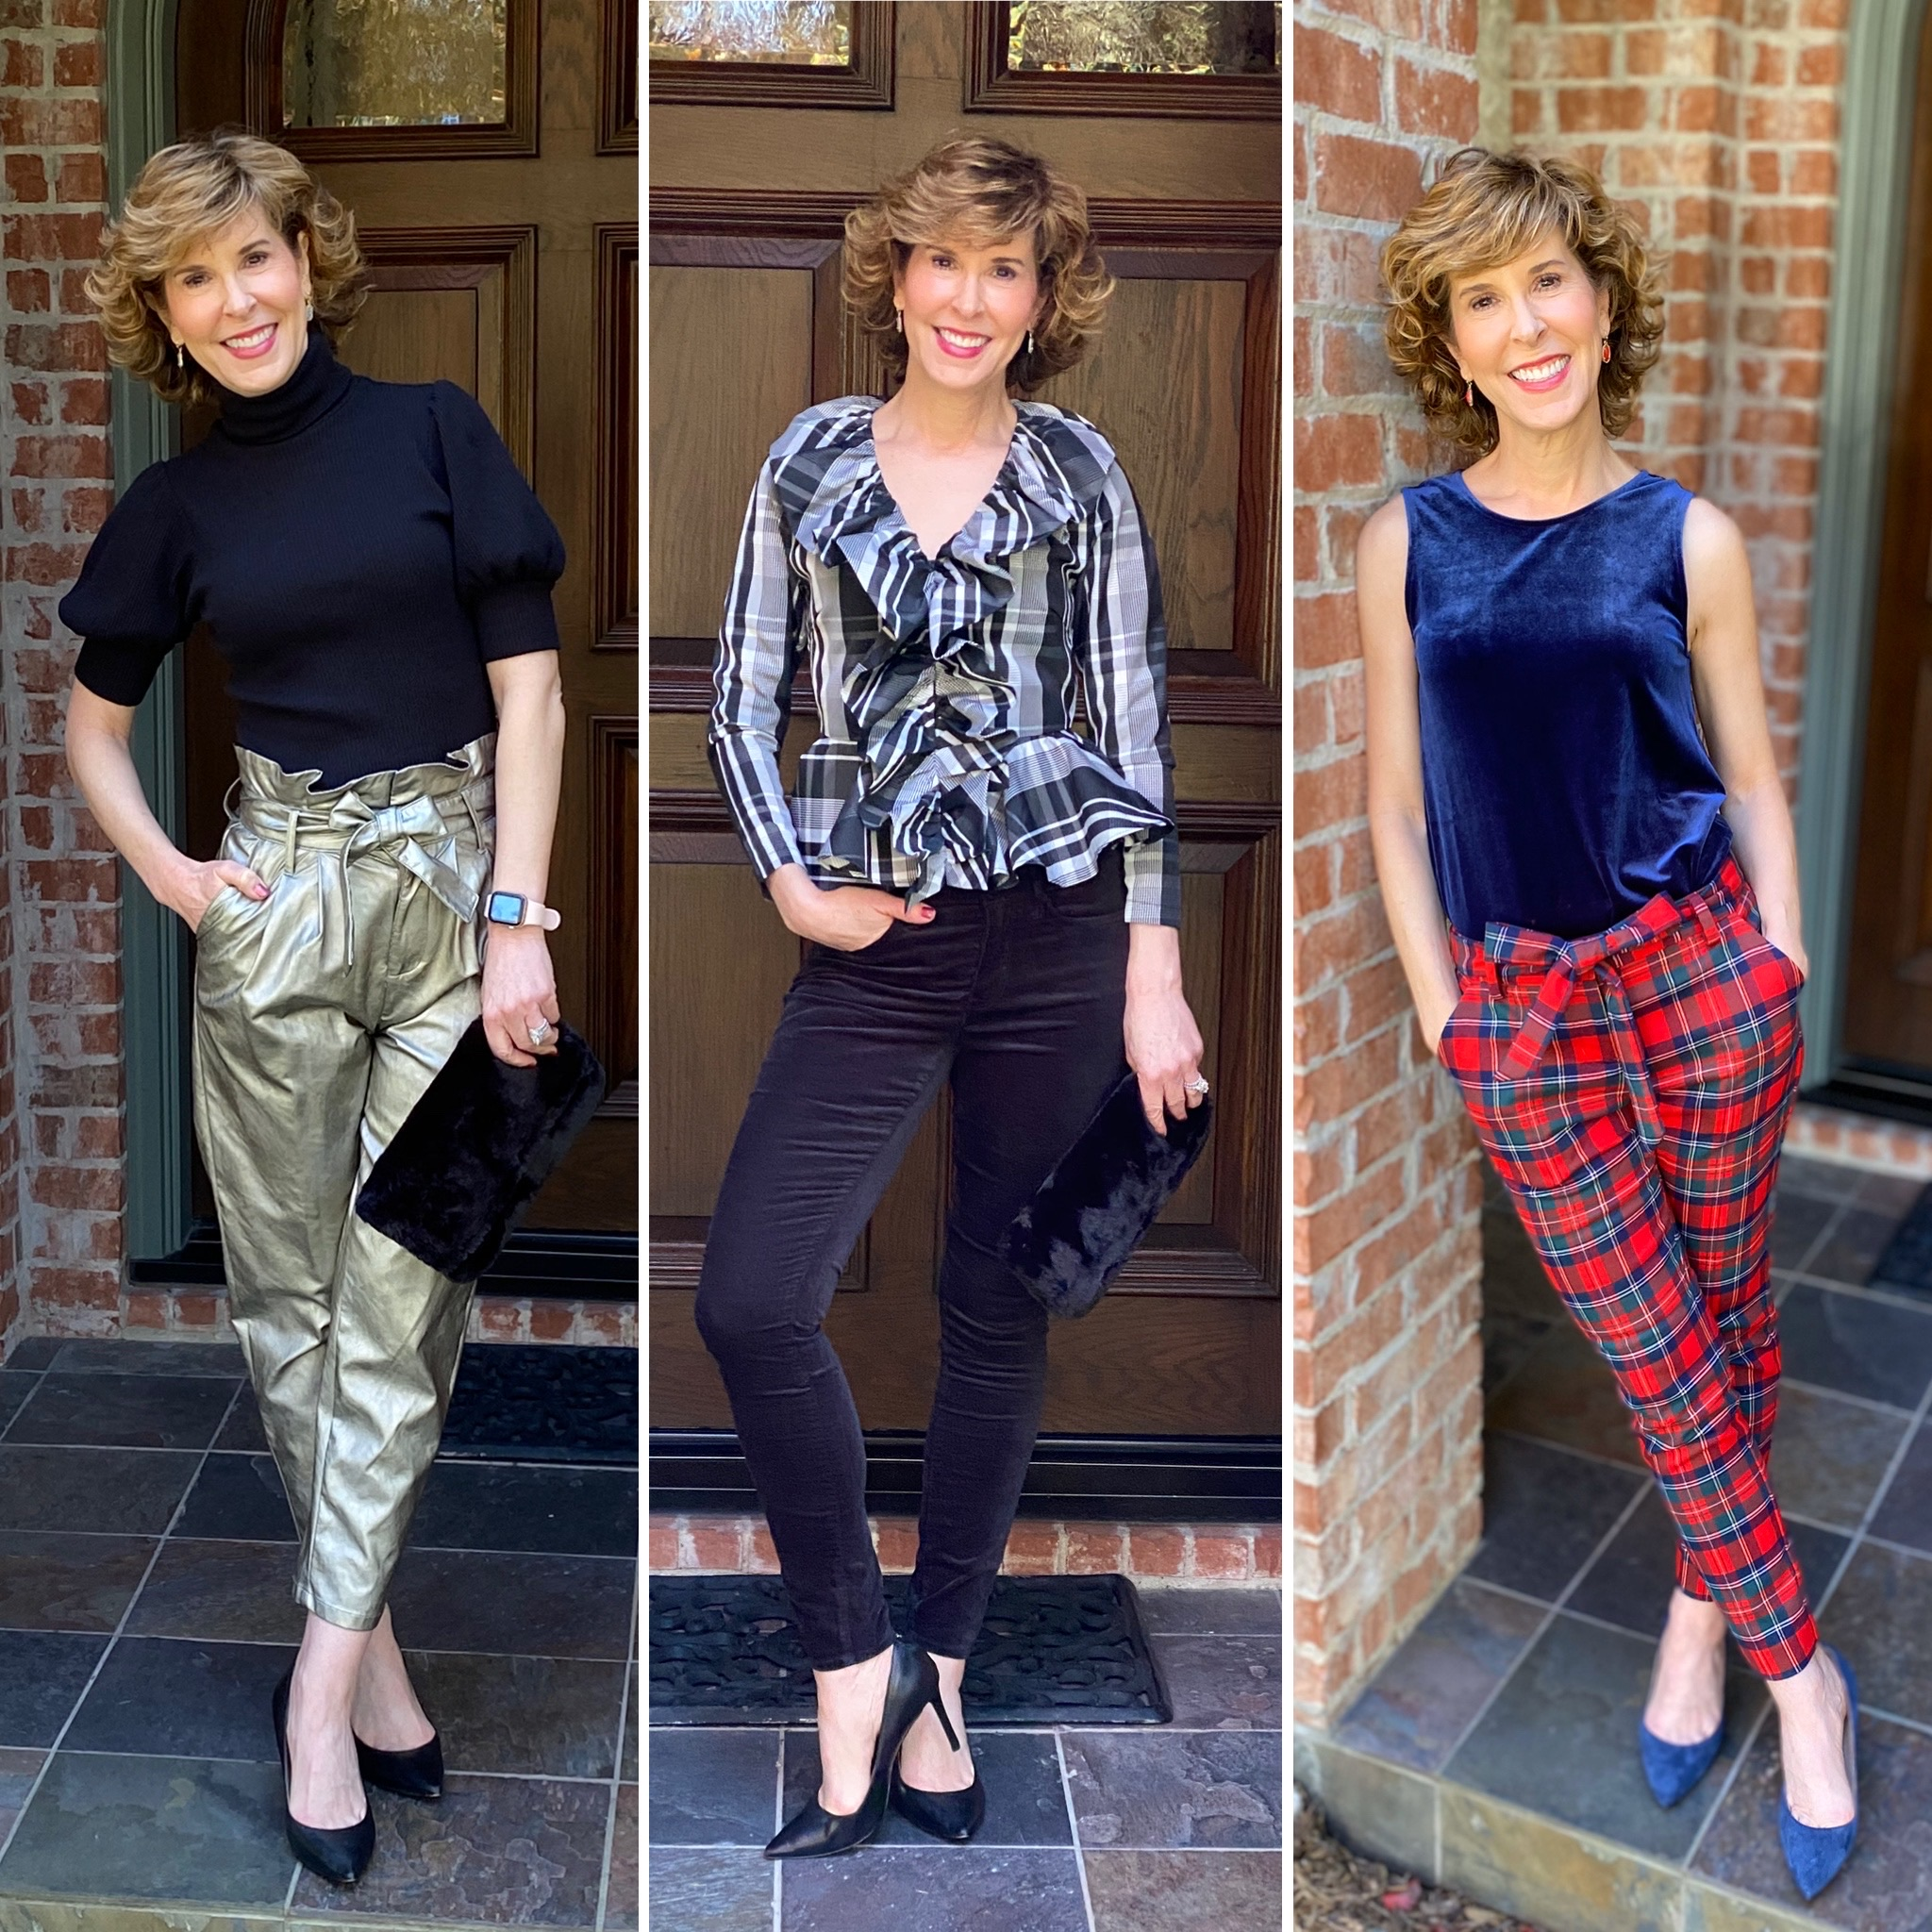 3 photo collage of woman wearing three different holiday party looks